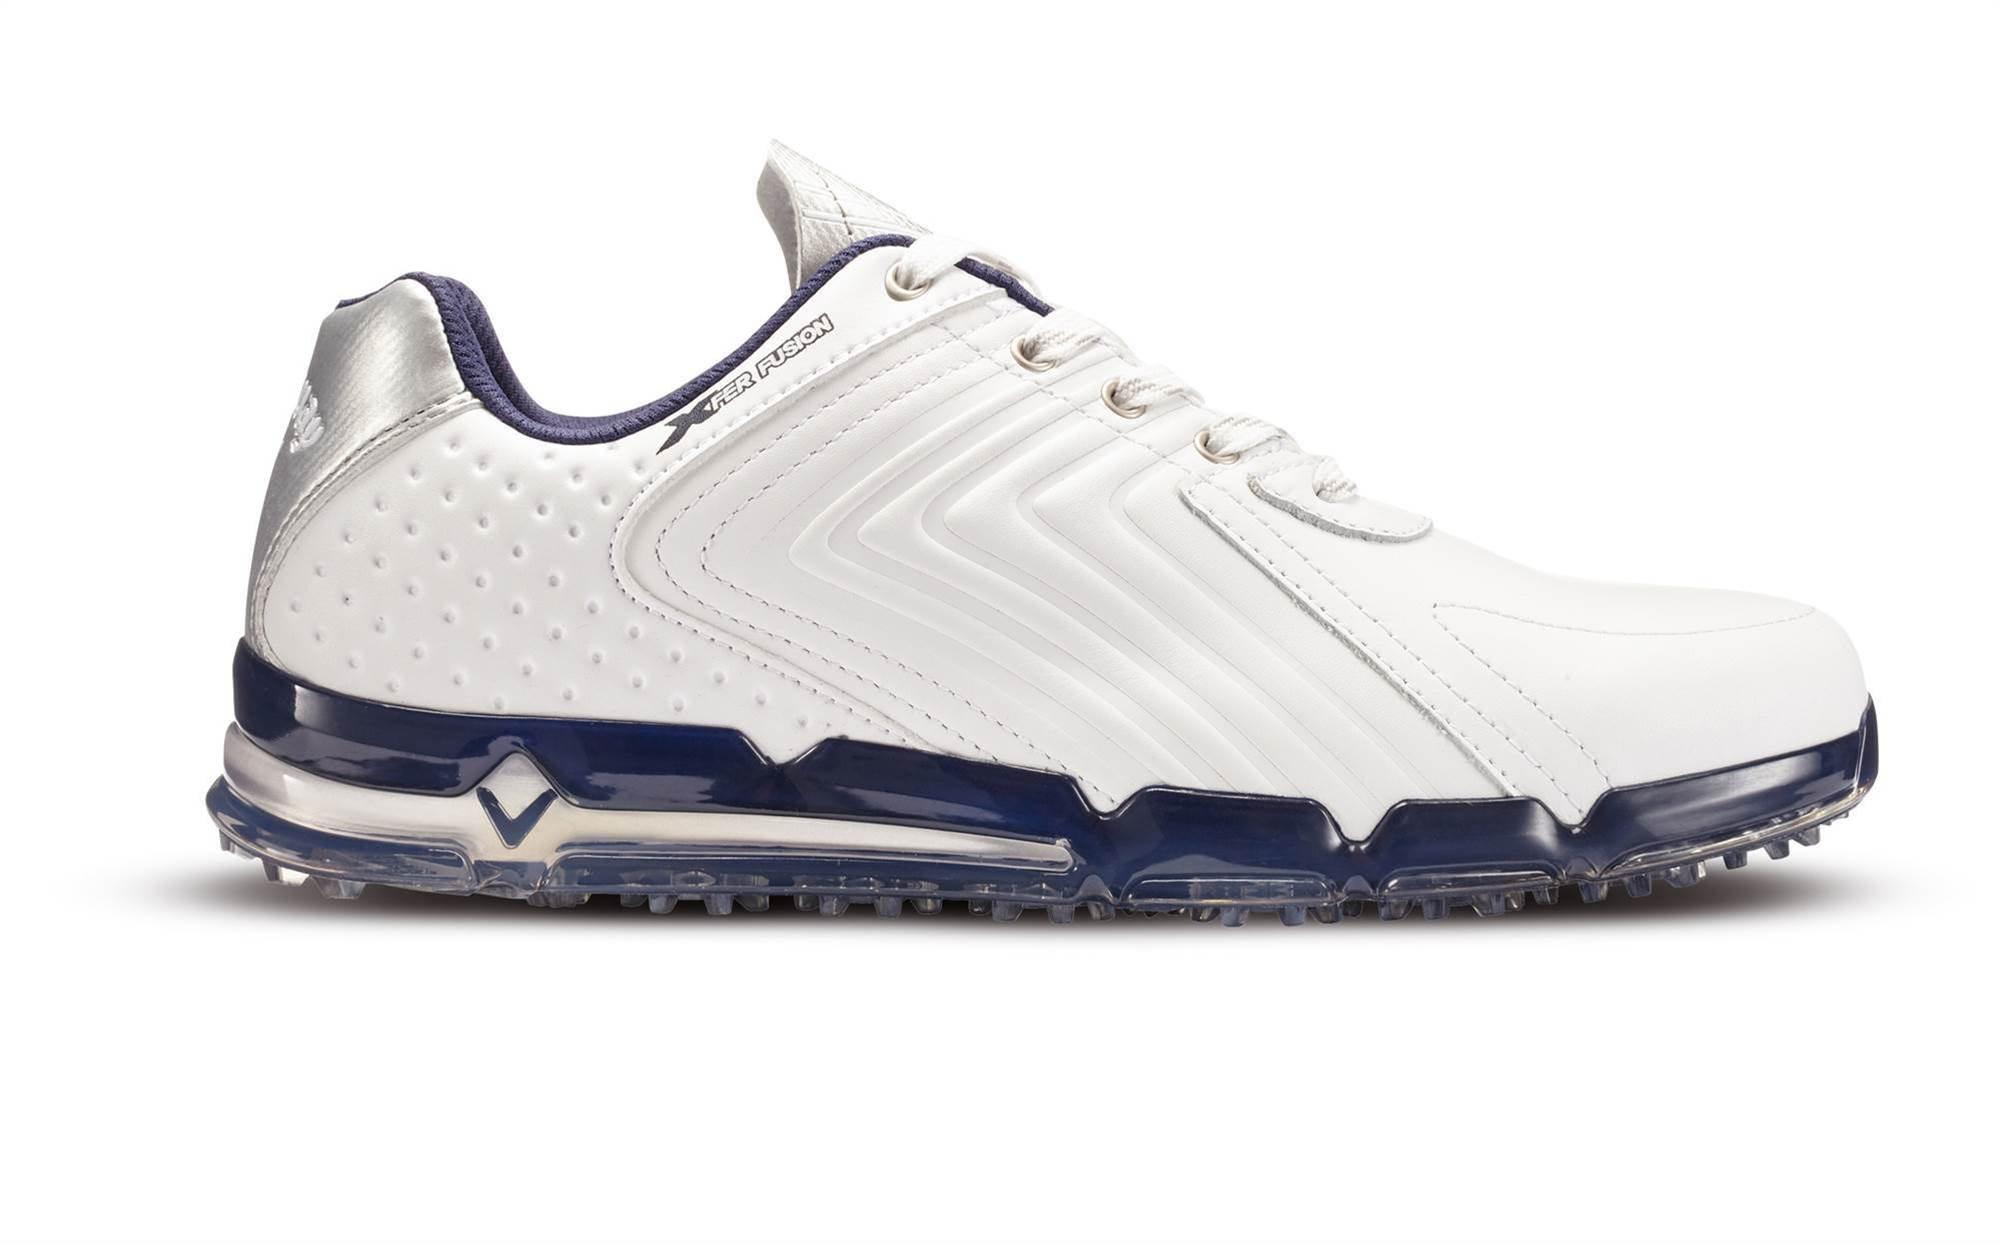 NEW GEAR: Callaway launch new footwear range